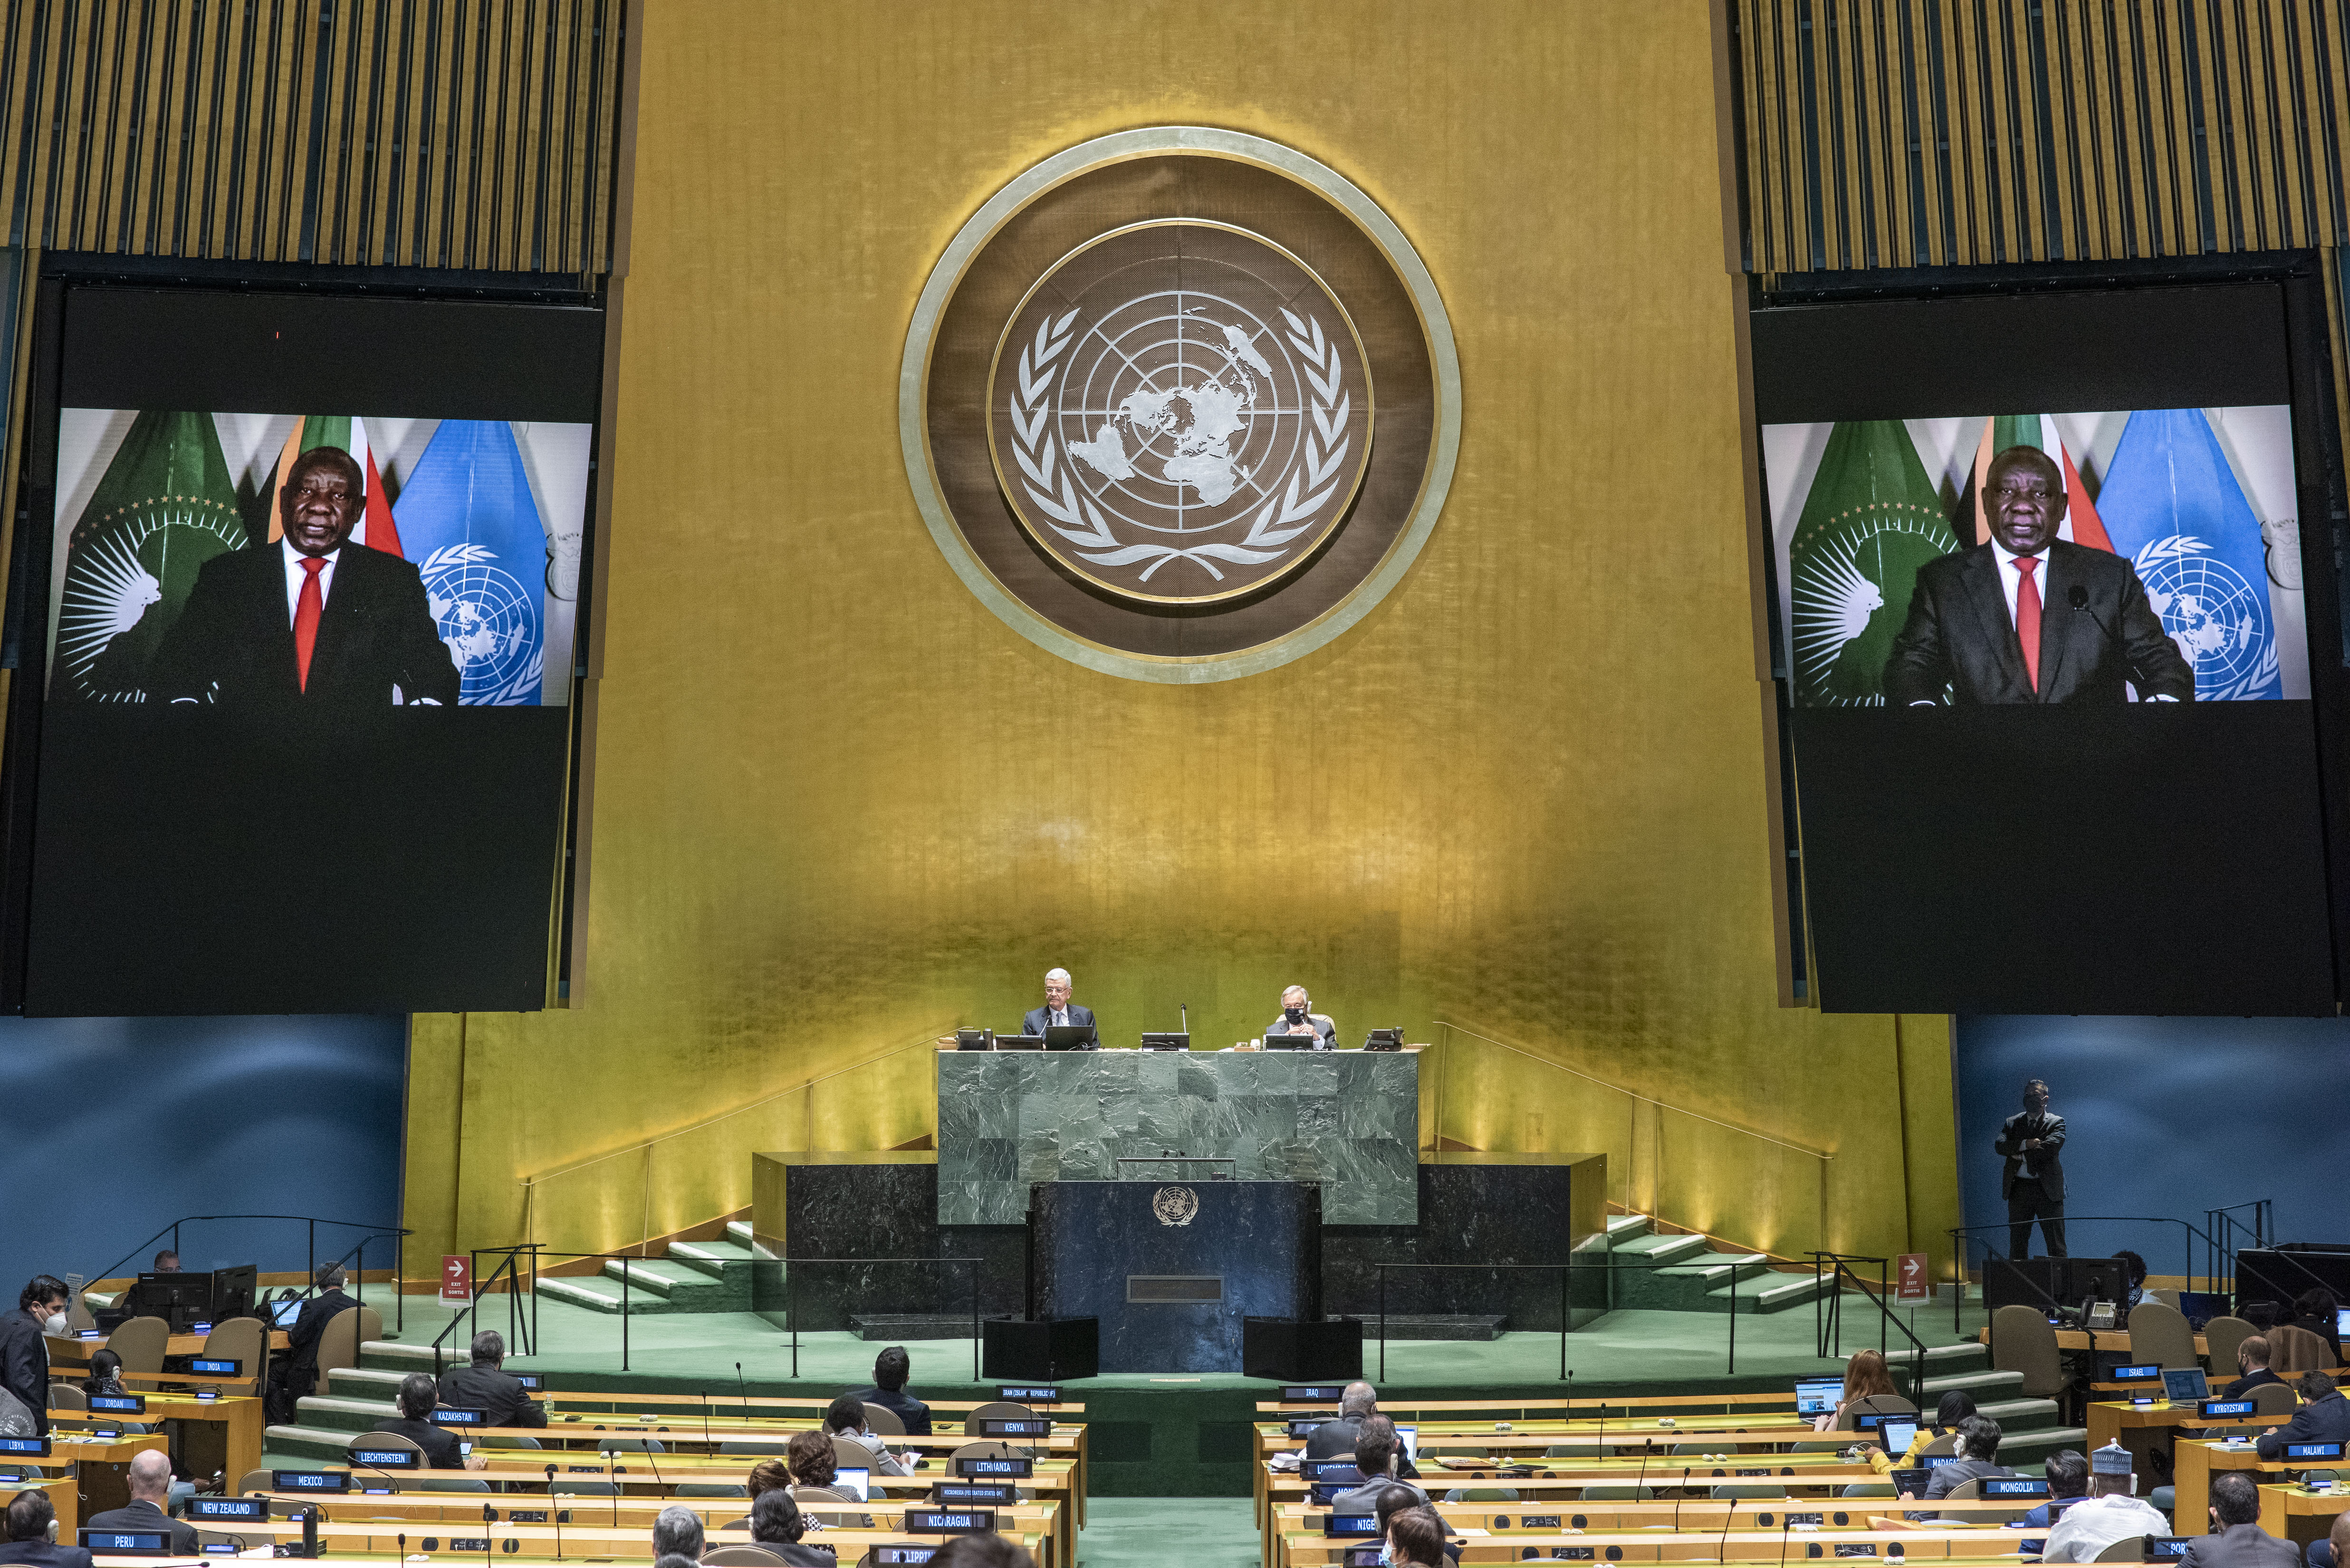 In this photo provided by the United Nations, South African President Cyril Ramaphosa speaks in a pre-recorded message played during the 75th session of the United Nations General Assembly, Tuesday, Sept. 22, 2020, at U.N. headquarters in New York. The U.N.'s first virtual meeting of world leaders started Tuesday with pre-recorded speeches from some of the planet's biggest powers, kept at home by the coronavirus pandemic that will likely be a dominant theme at their video gathering this year. Photo: AP